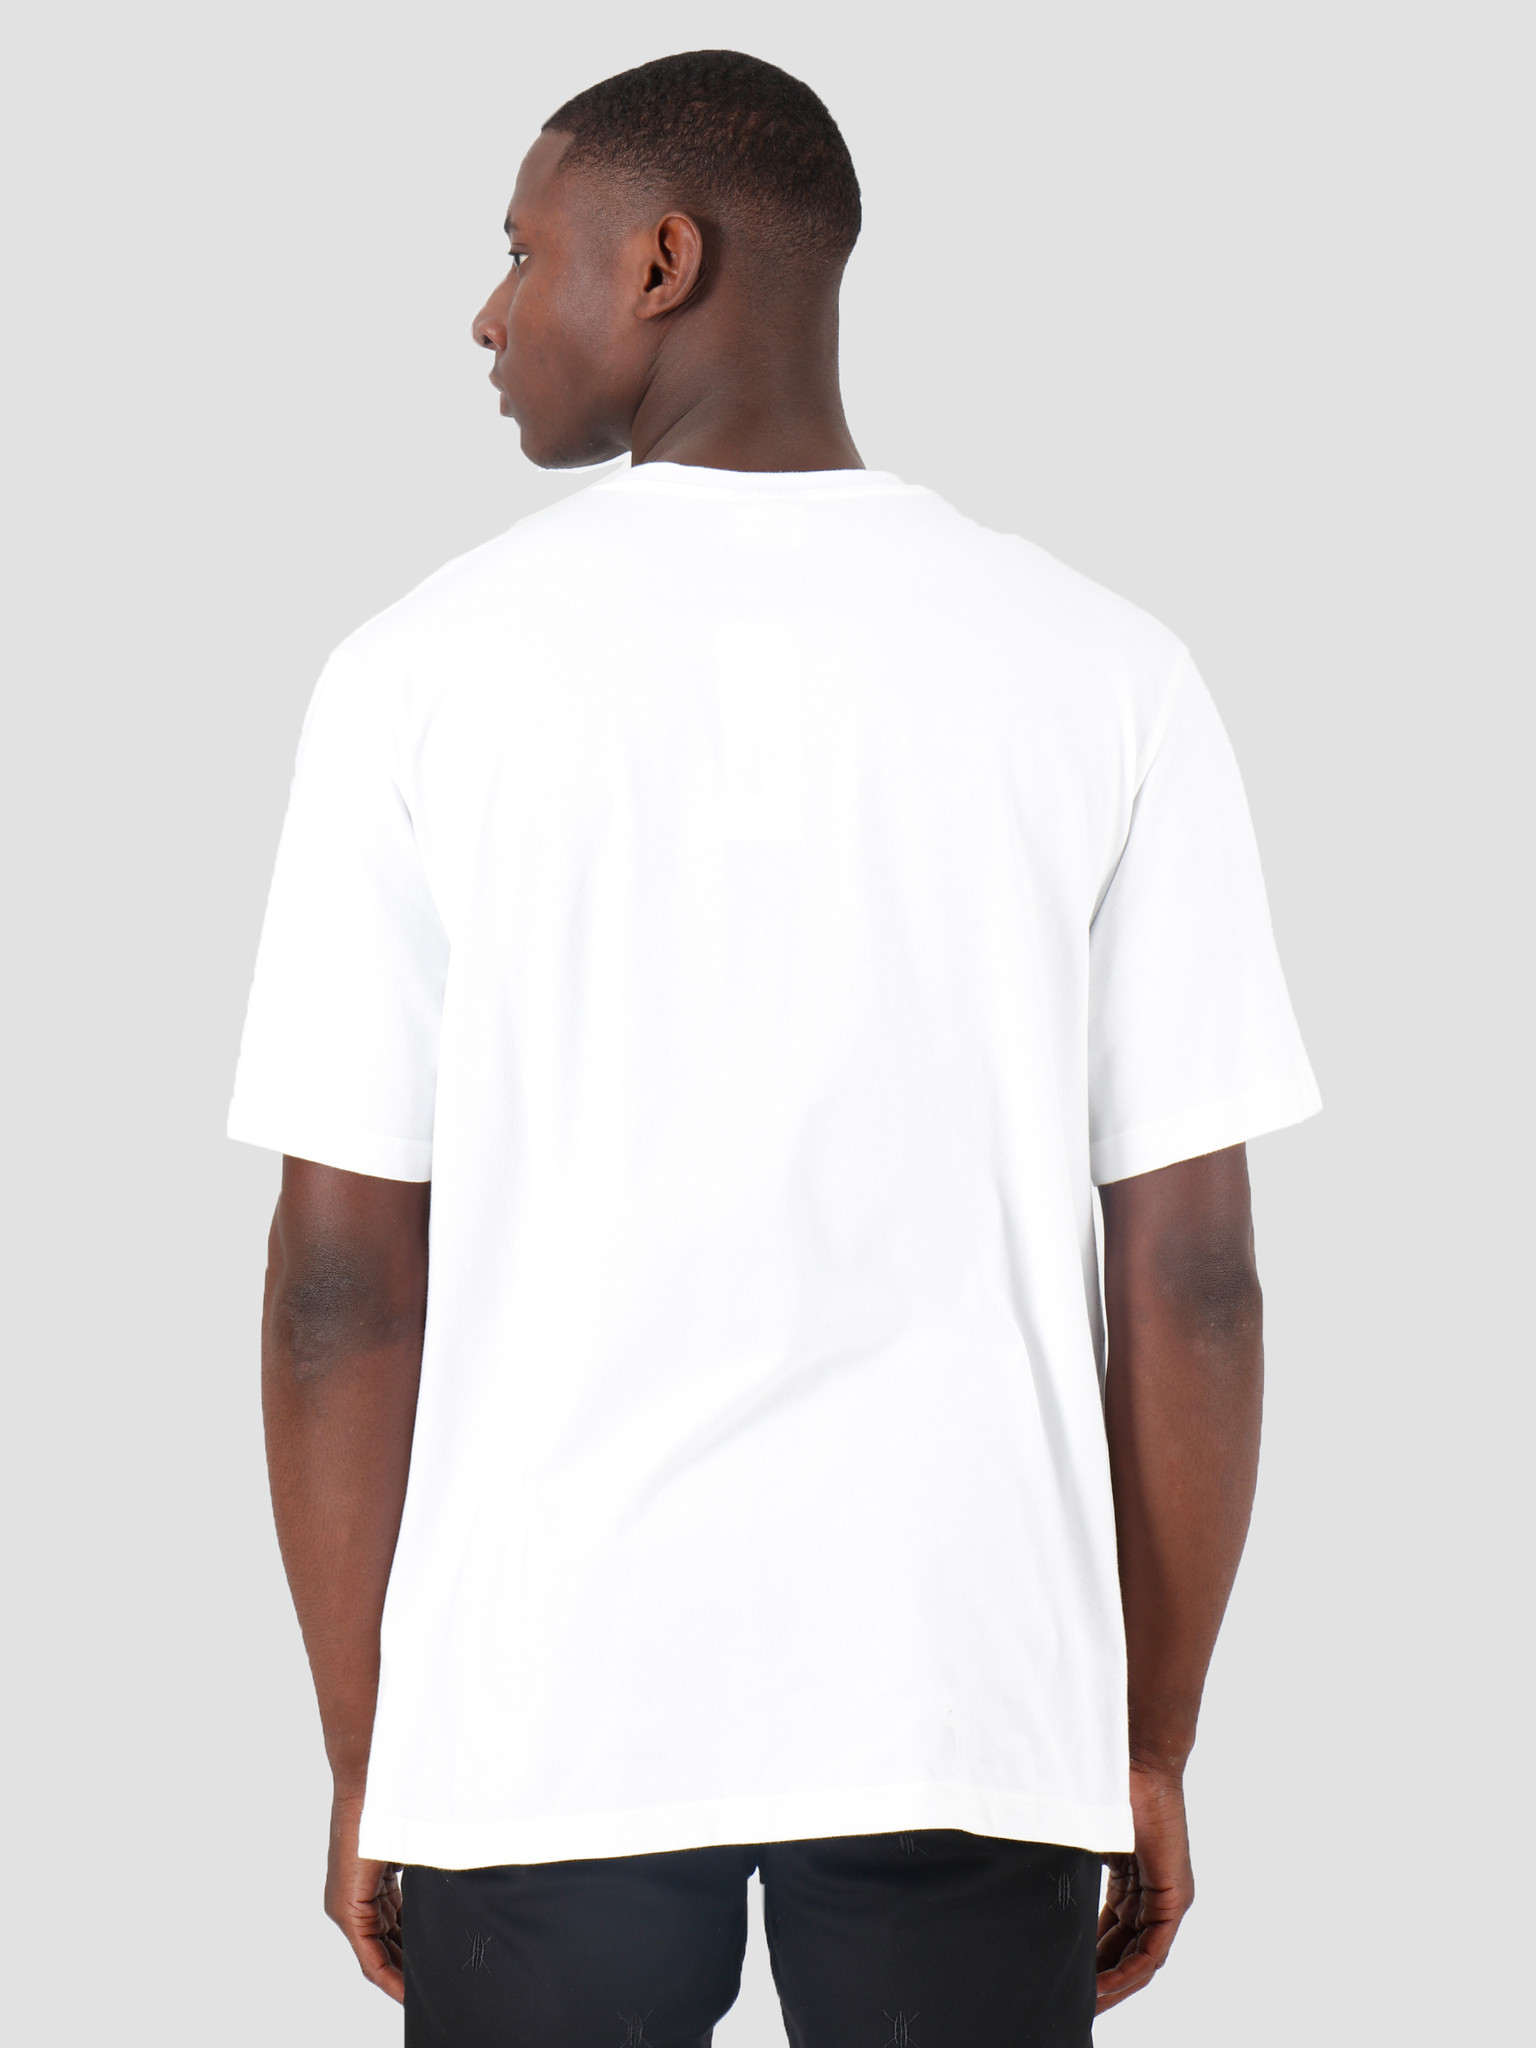 Daily Paper Daily Paper Gous 4 T-Shirt White 19F1TS30-04